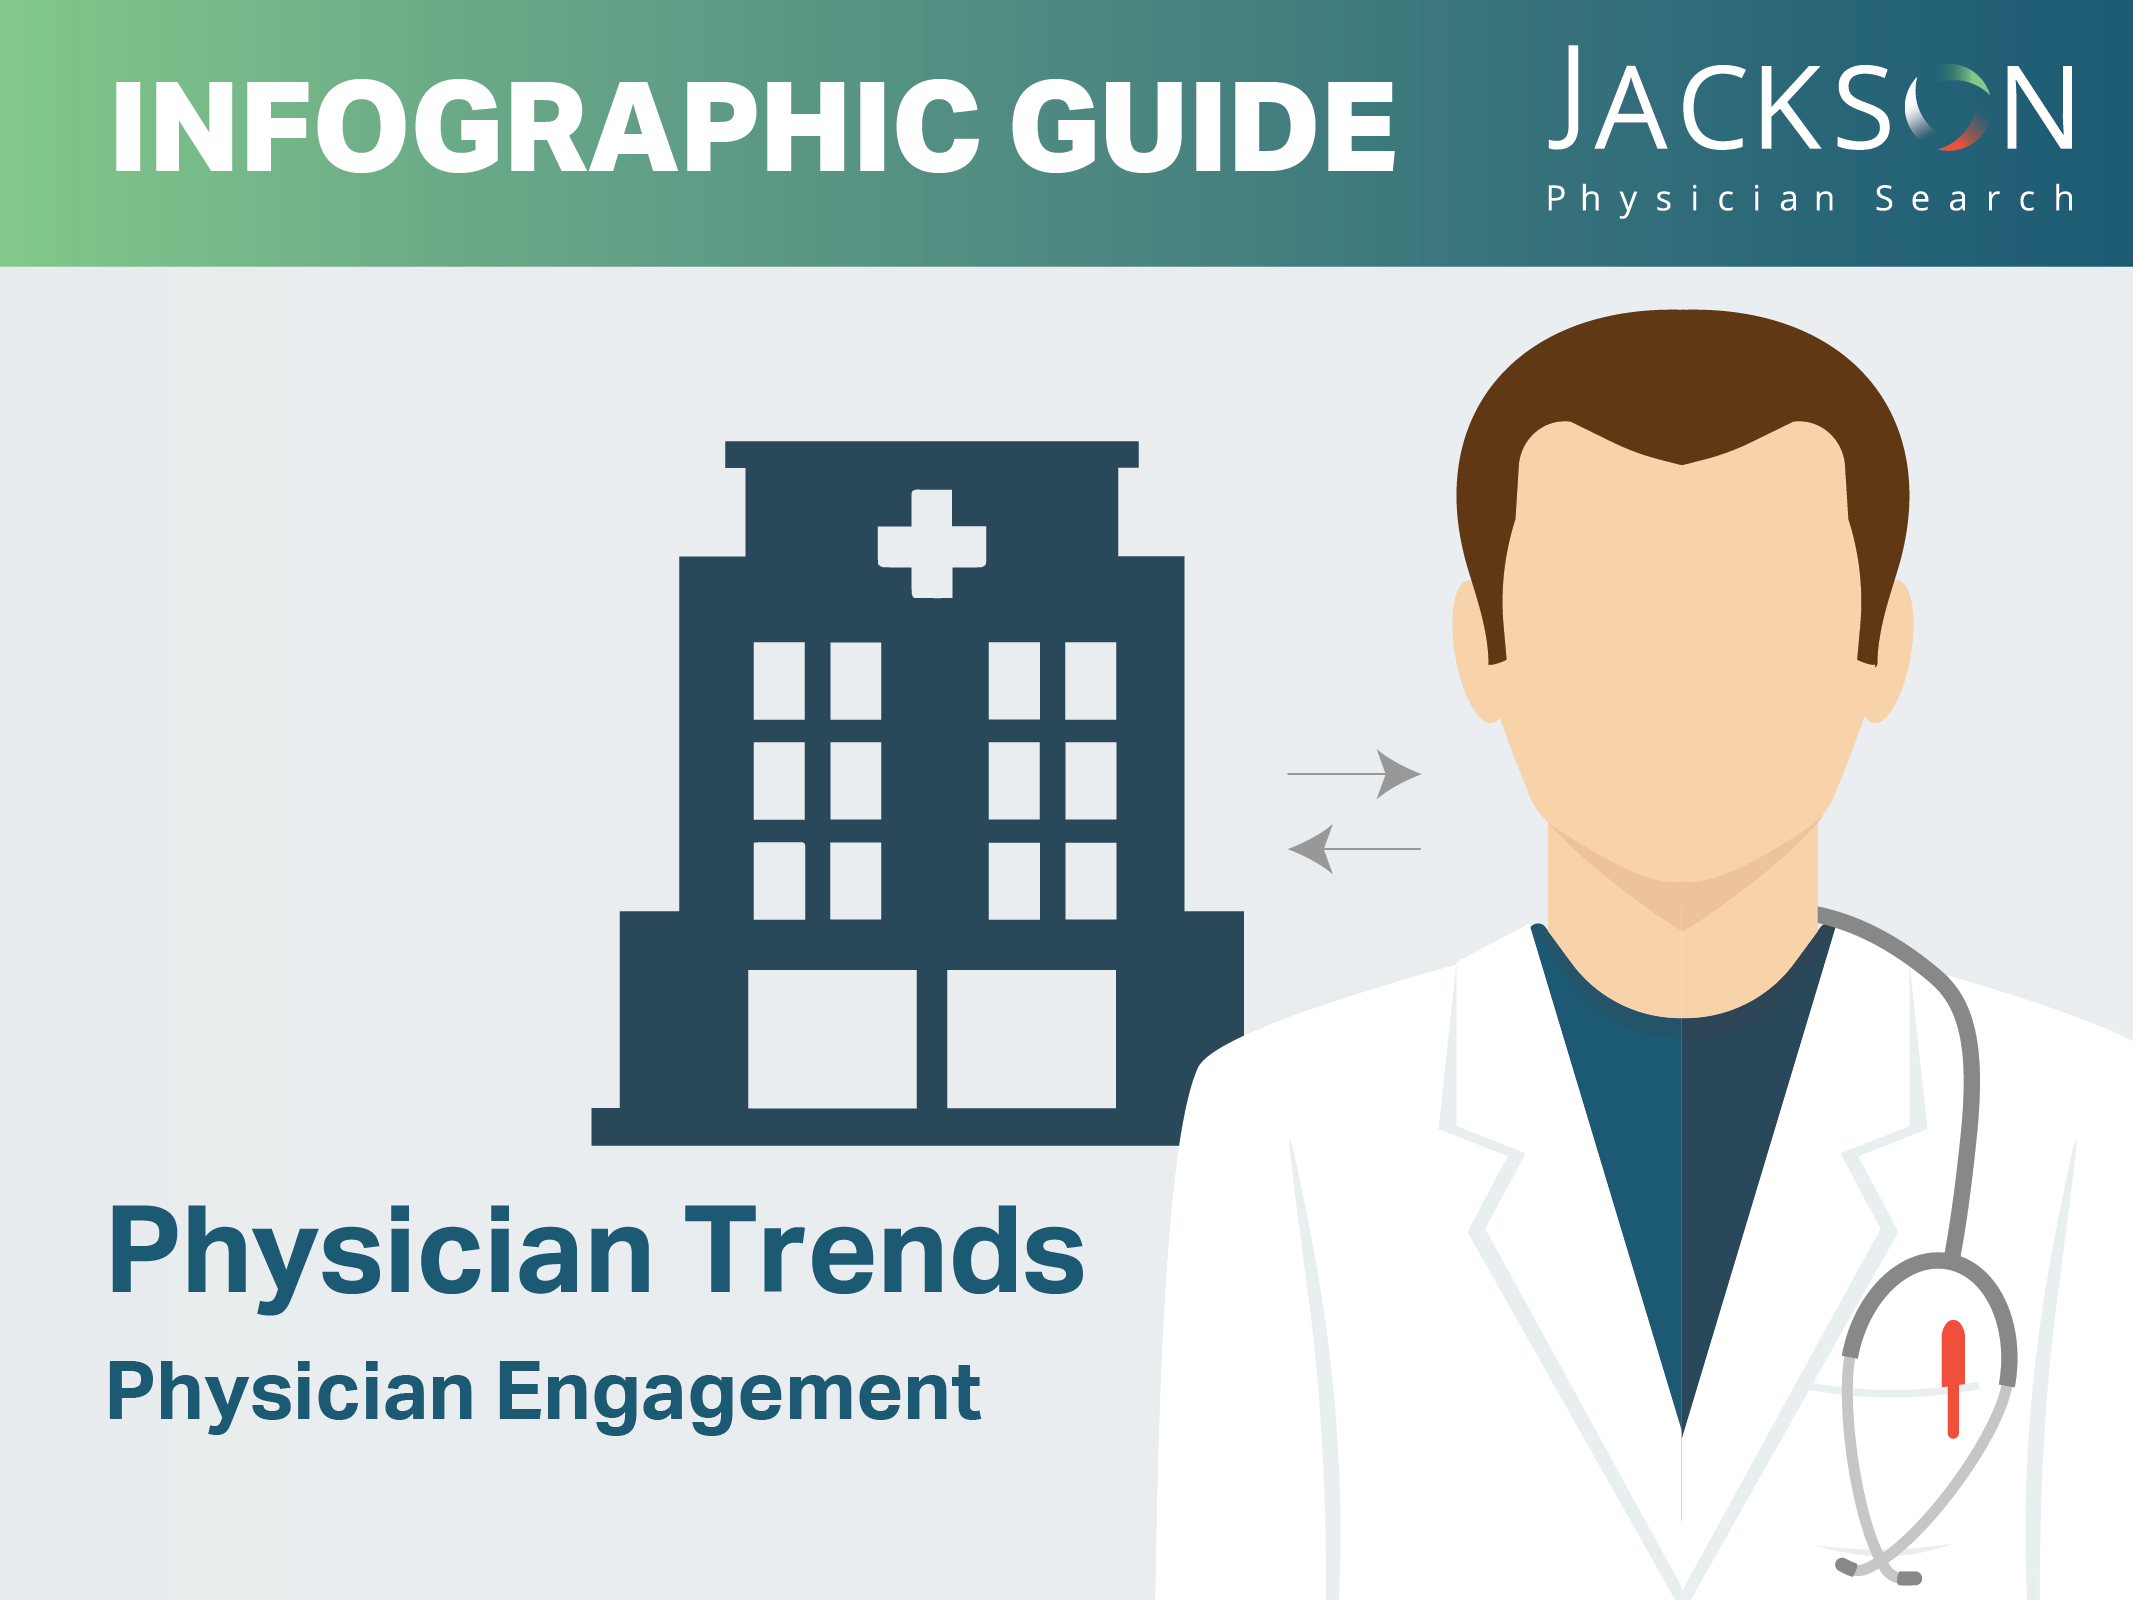 [Infographic Guide] Physician Trends, Physician Engagement